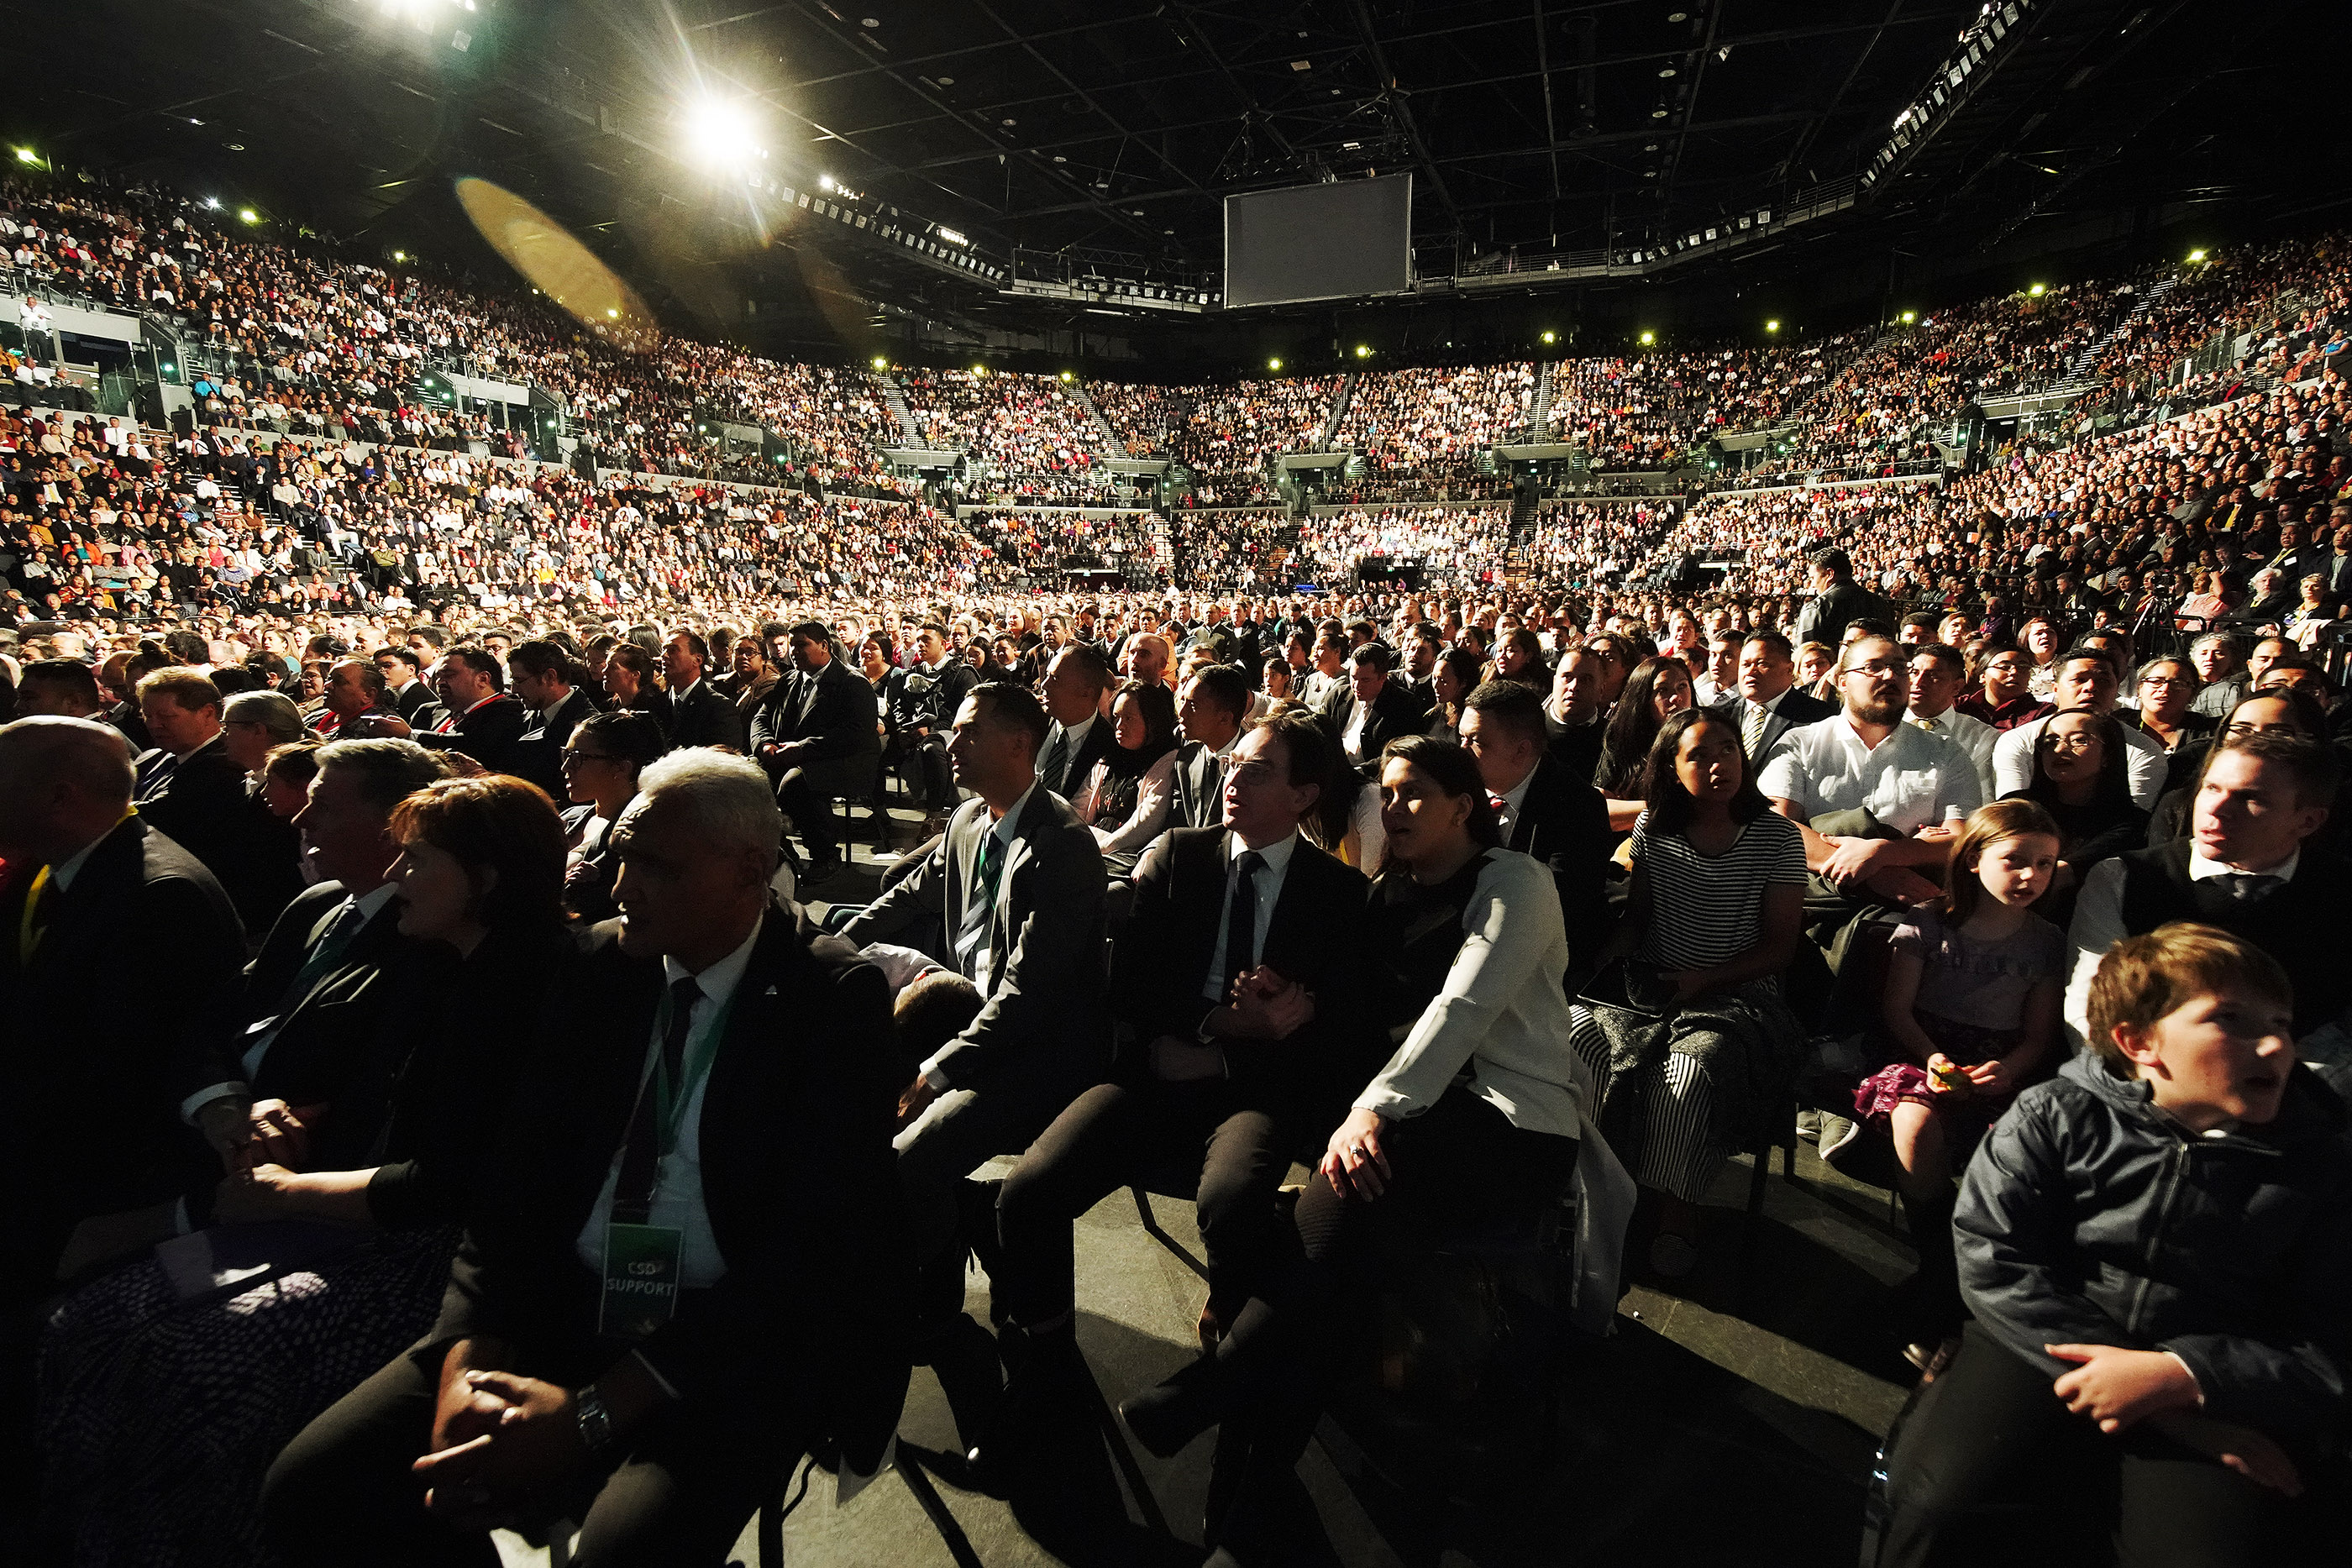 Attendees listen as President Russell M. Nelson of The Church of Jesus Christ of Latter-day Saints speaks at Spark Arena in Auckland, New Zealand on May 21, 2019.